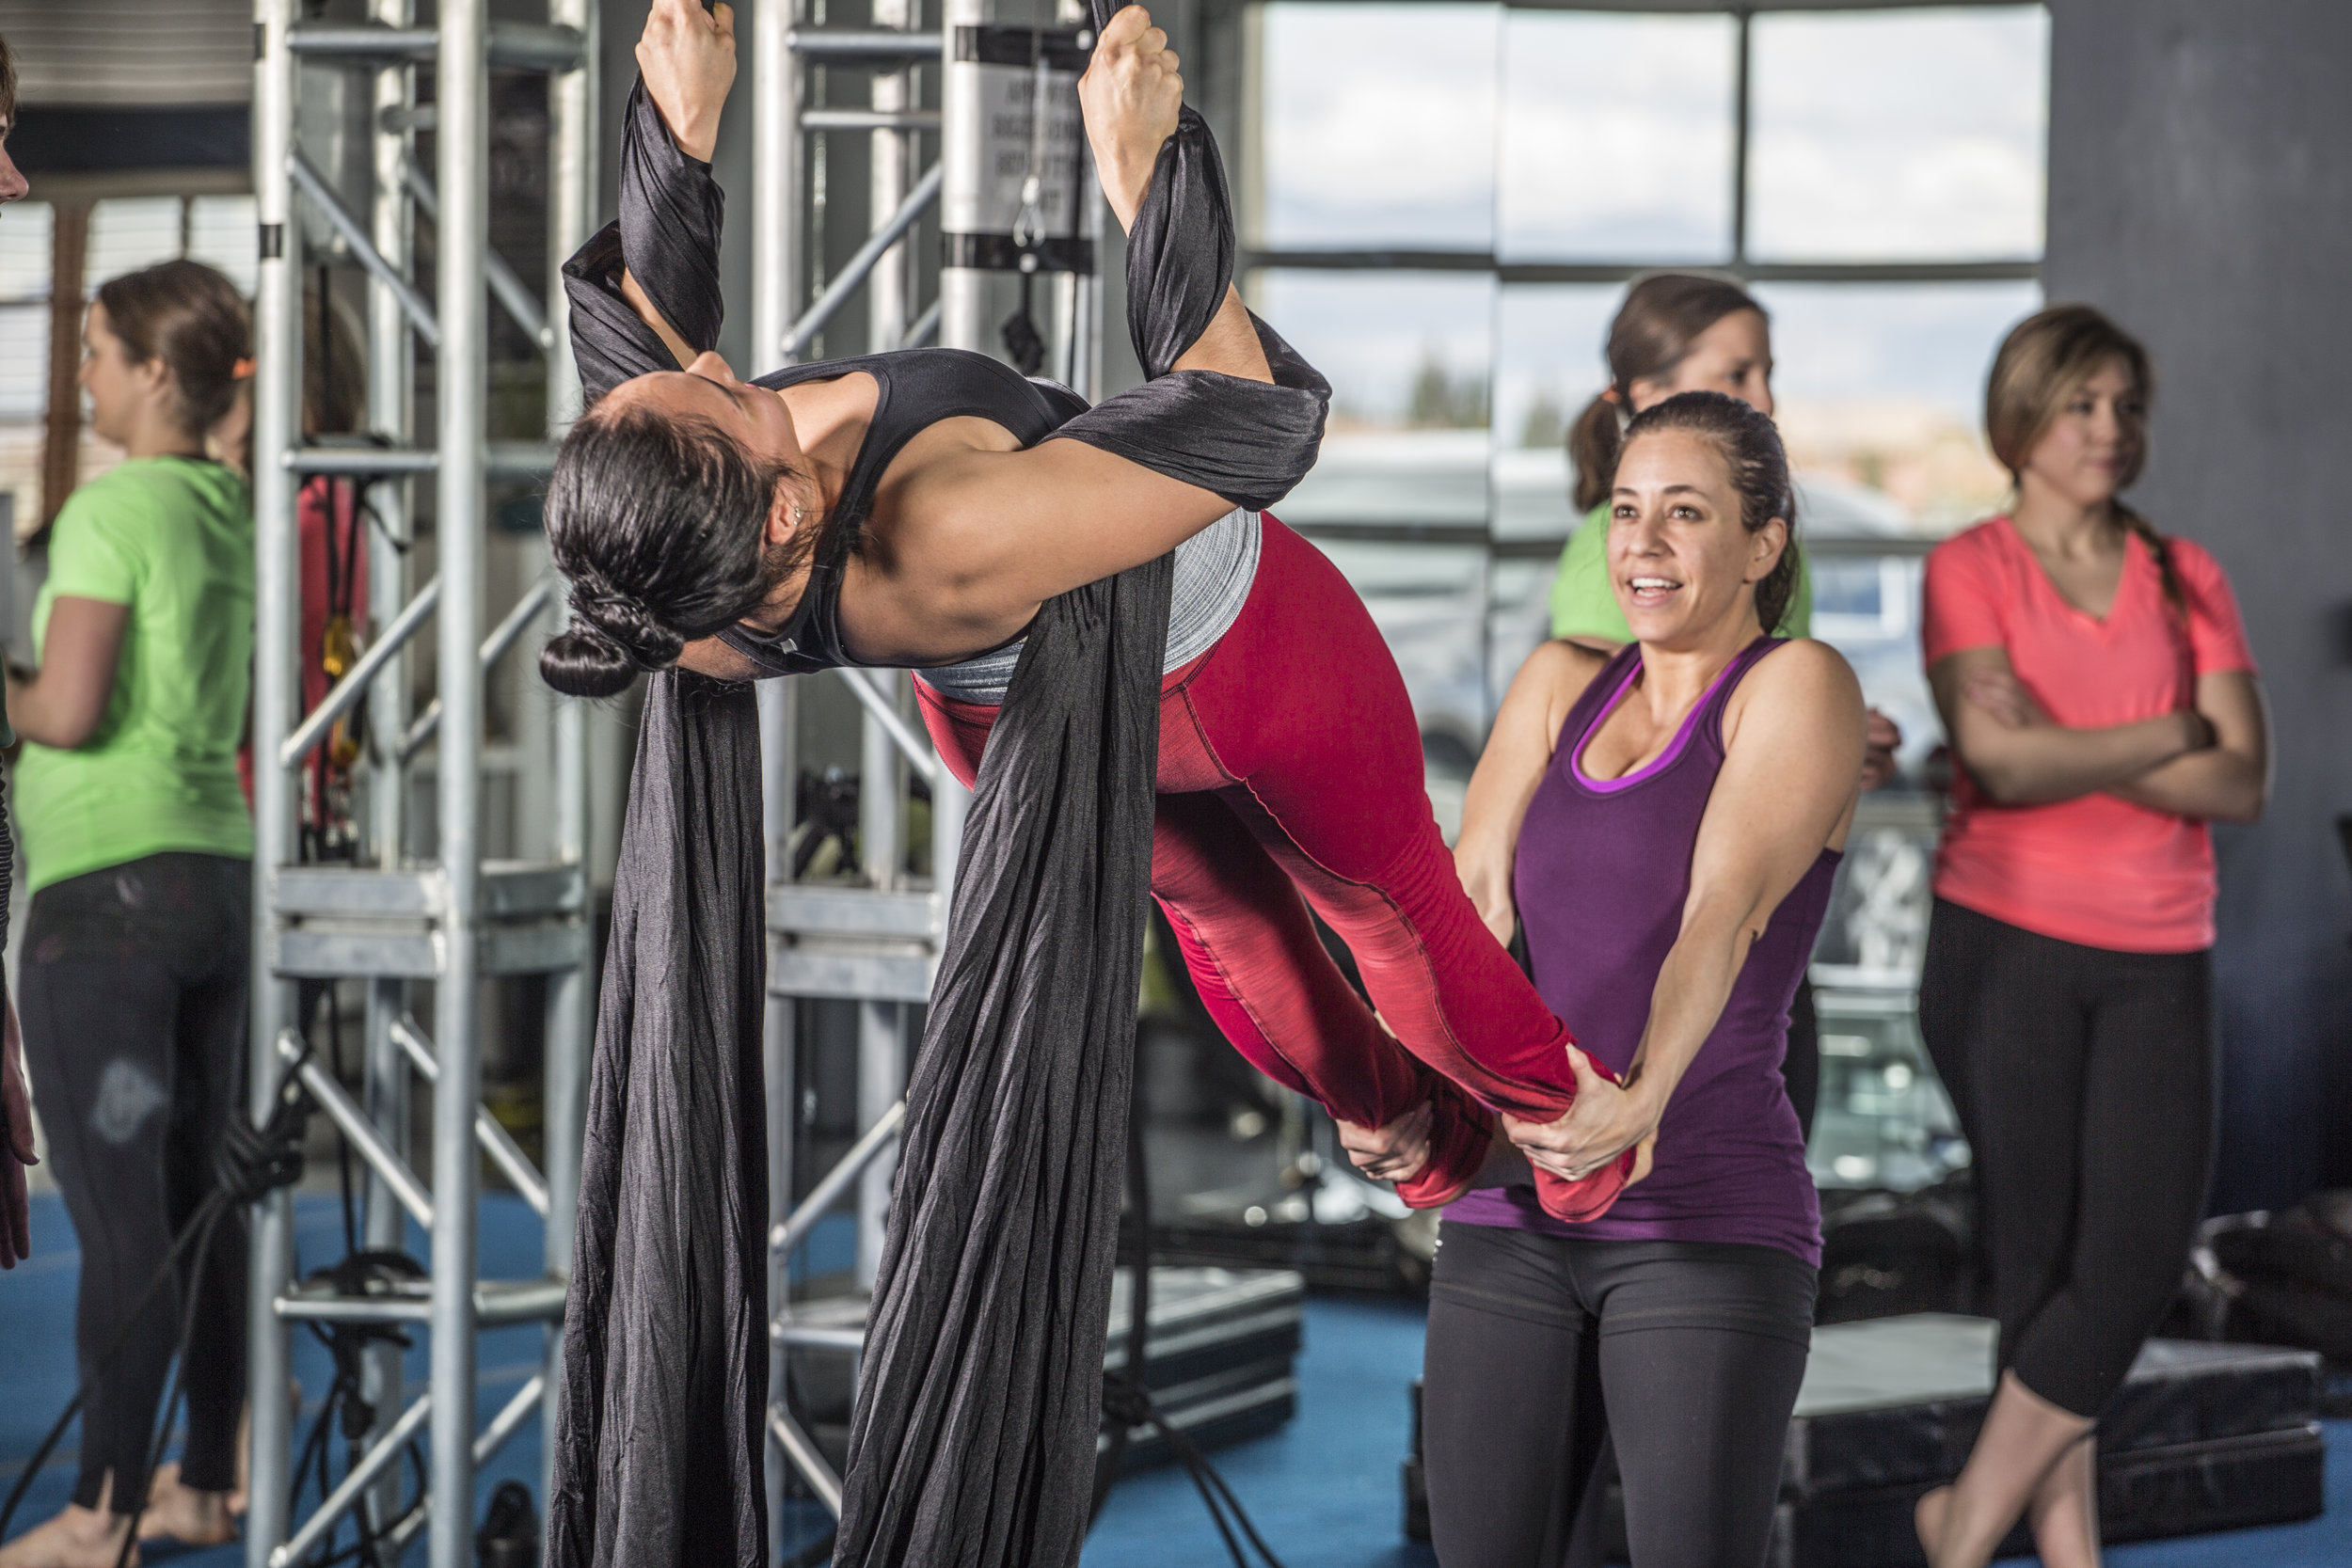 Aerial Silks - Shine Alternative Fitness - Las Vegas Nevada